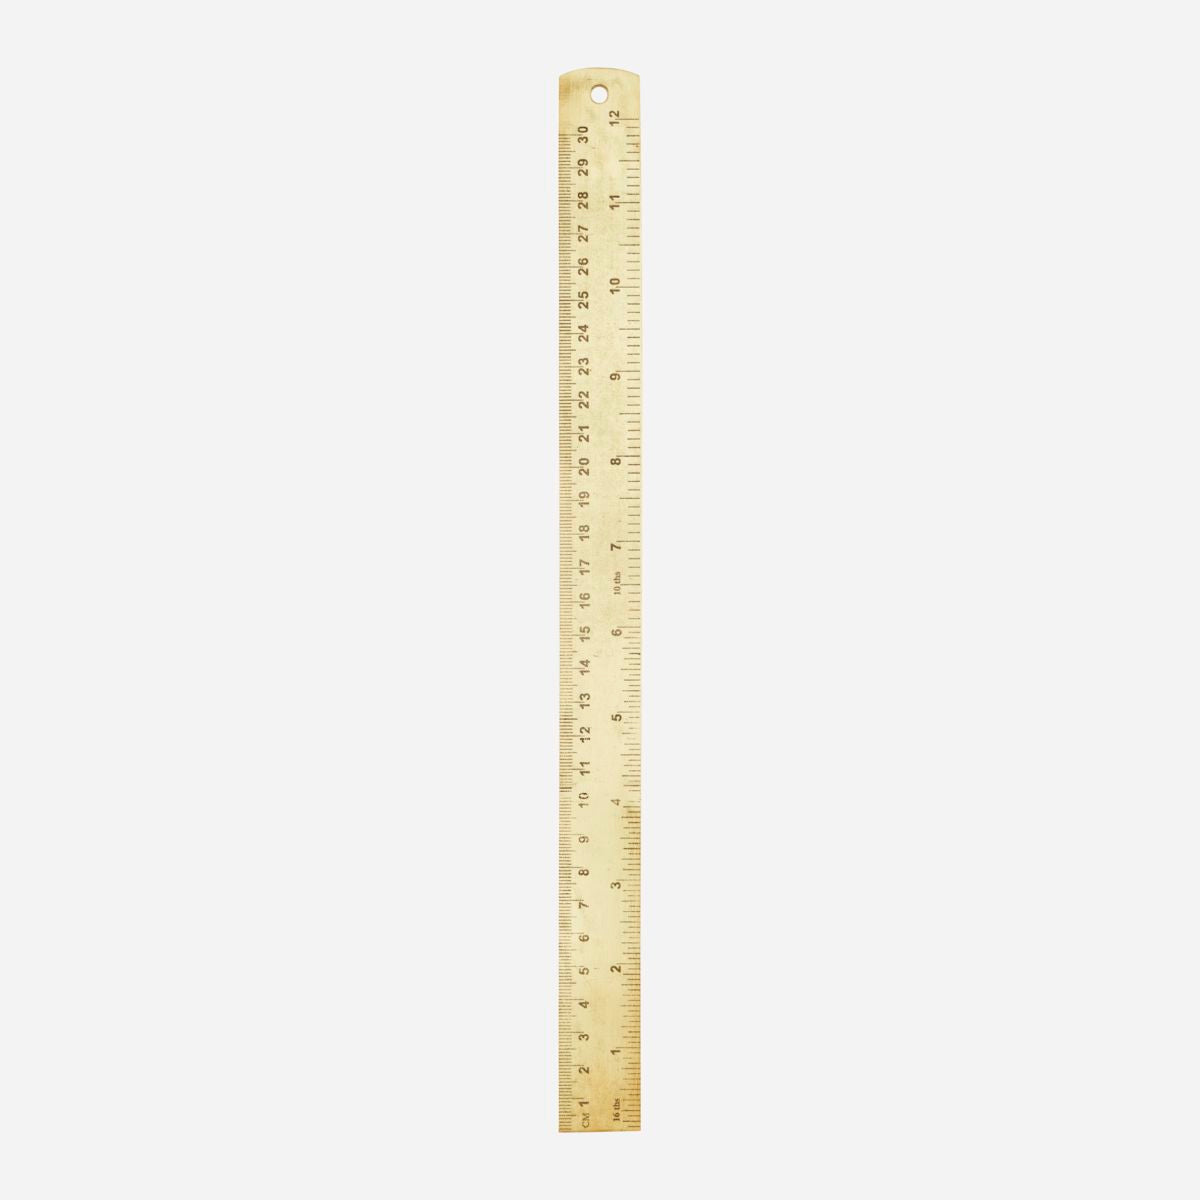 Lineal, Messing - l: 17.5 cm